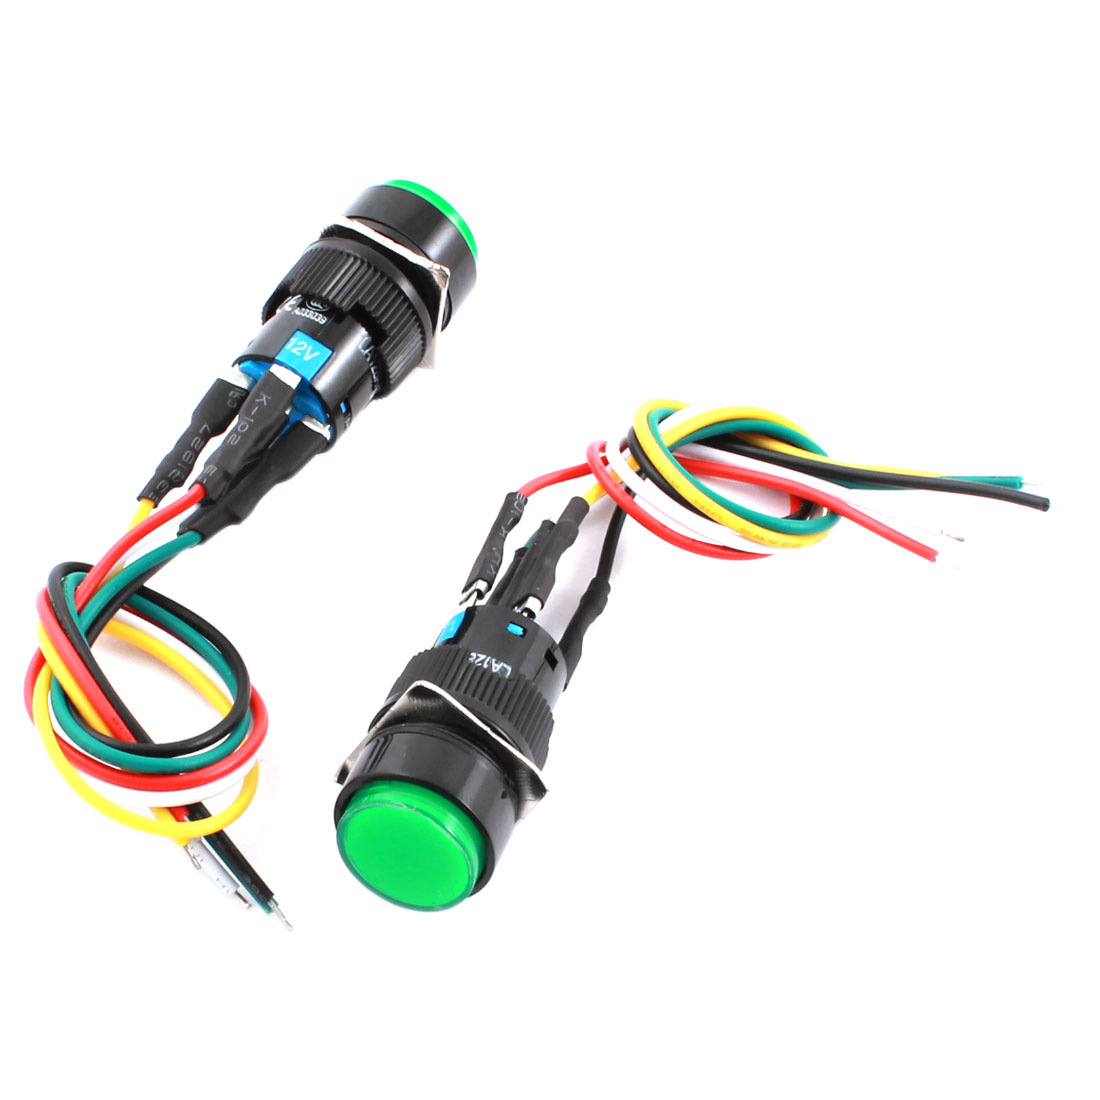 2Pcs DC 12V 16mm Thread Panel Mount 5-Wire SPDT 1NO 1NC Latching Control Green Pilot Lamp Push Button Switch